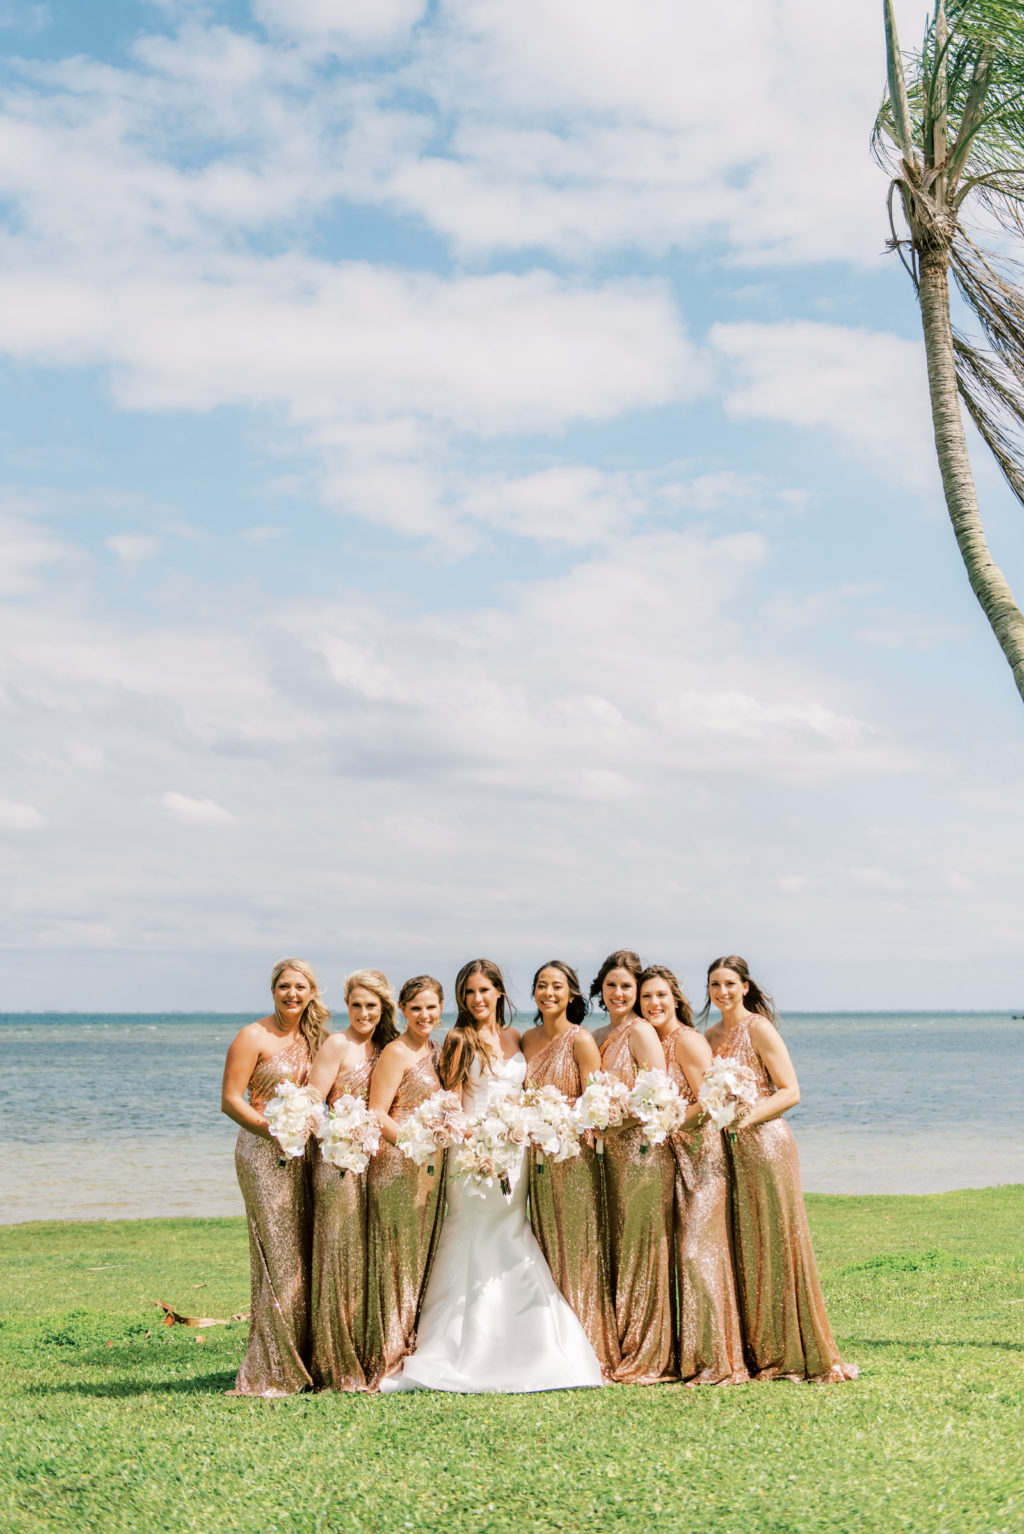 Florida Bride and Bridesmaids in Matching One Shoulder Rose Gold Sequin Dresses Waterfront Outdoor Photo | Tampa Bay Wedding Photographer Kera Photography